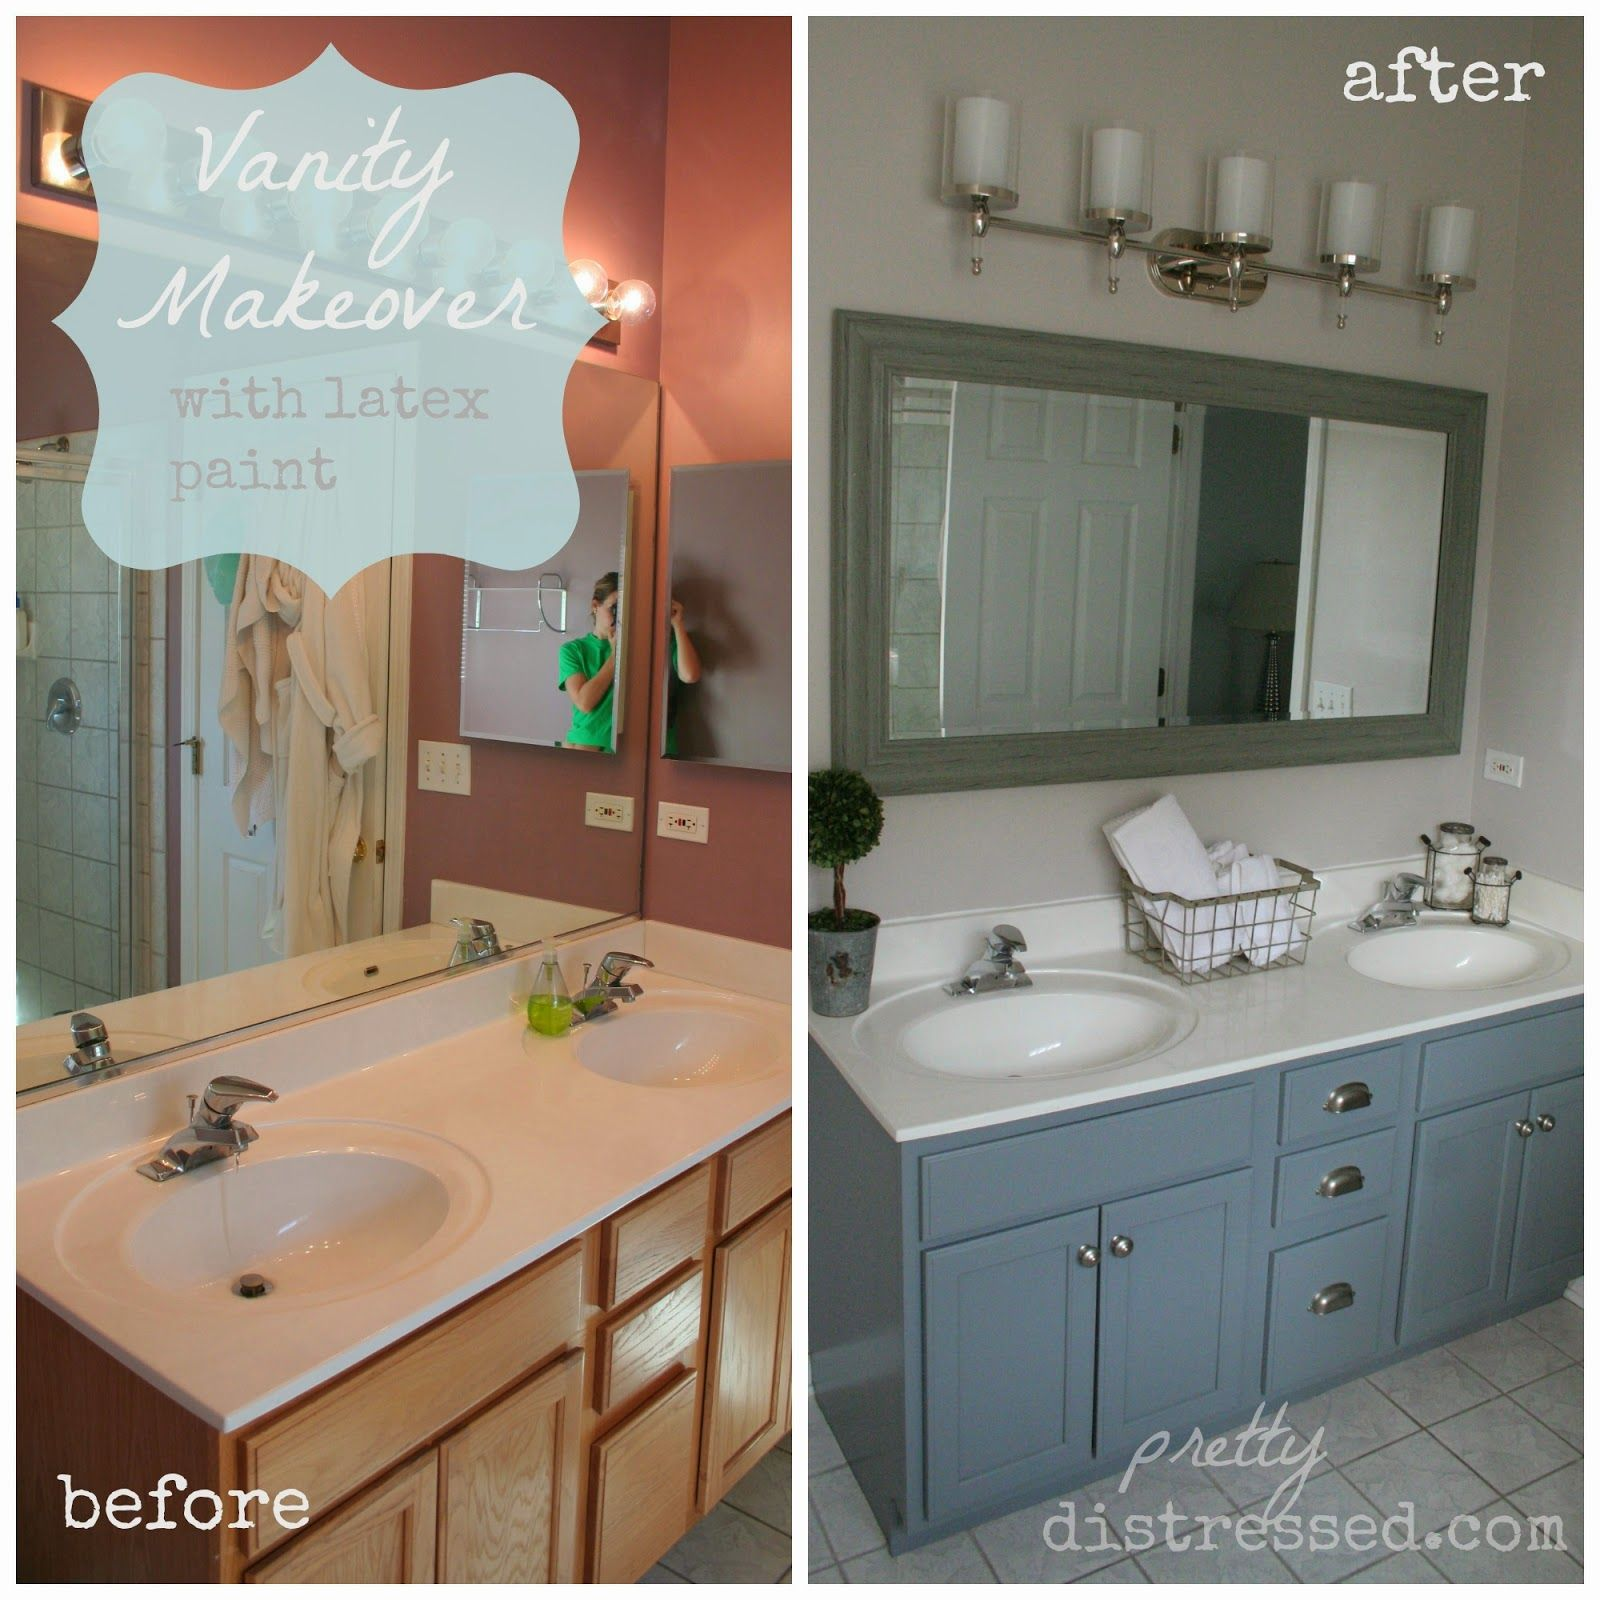 Bathroom vanities on a budget - Bathroom Oak Vanity Makeover With Latex Paint Bathroom Ideas Painted Furniture